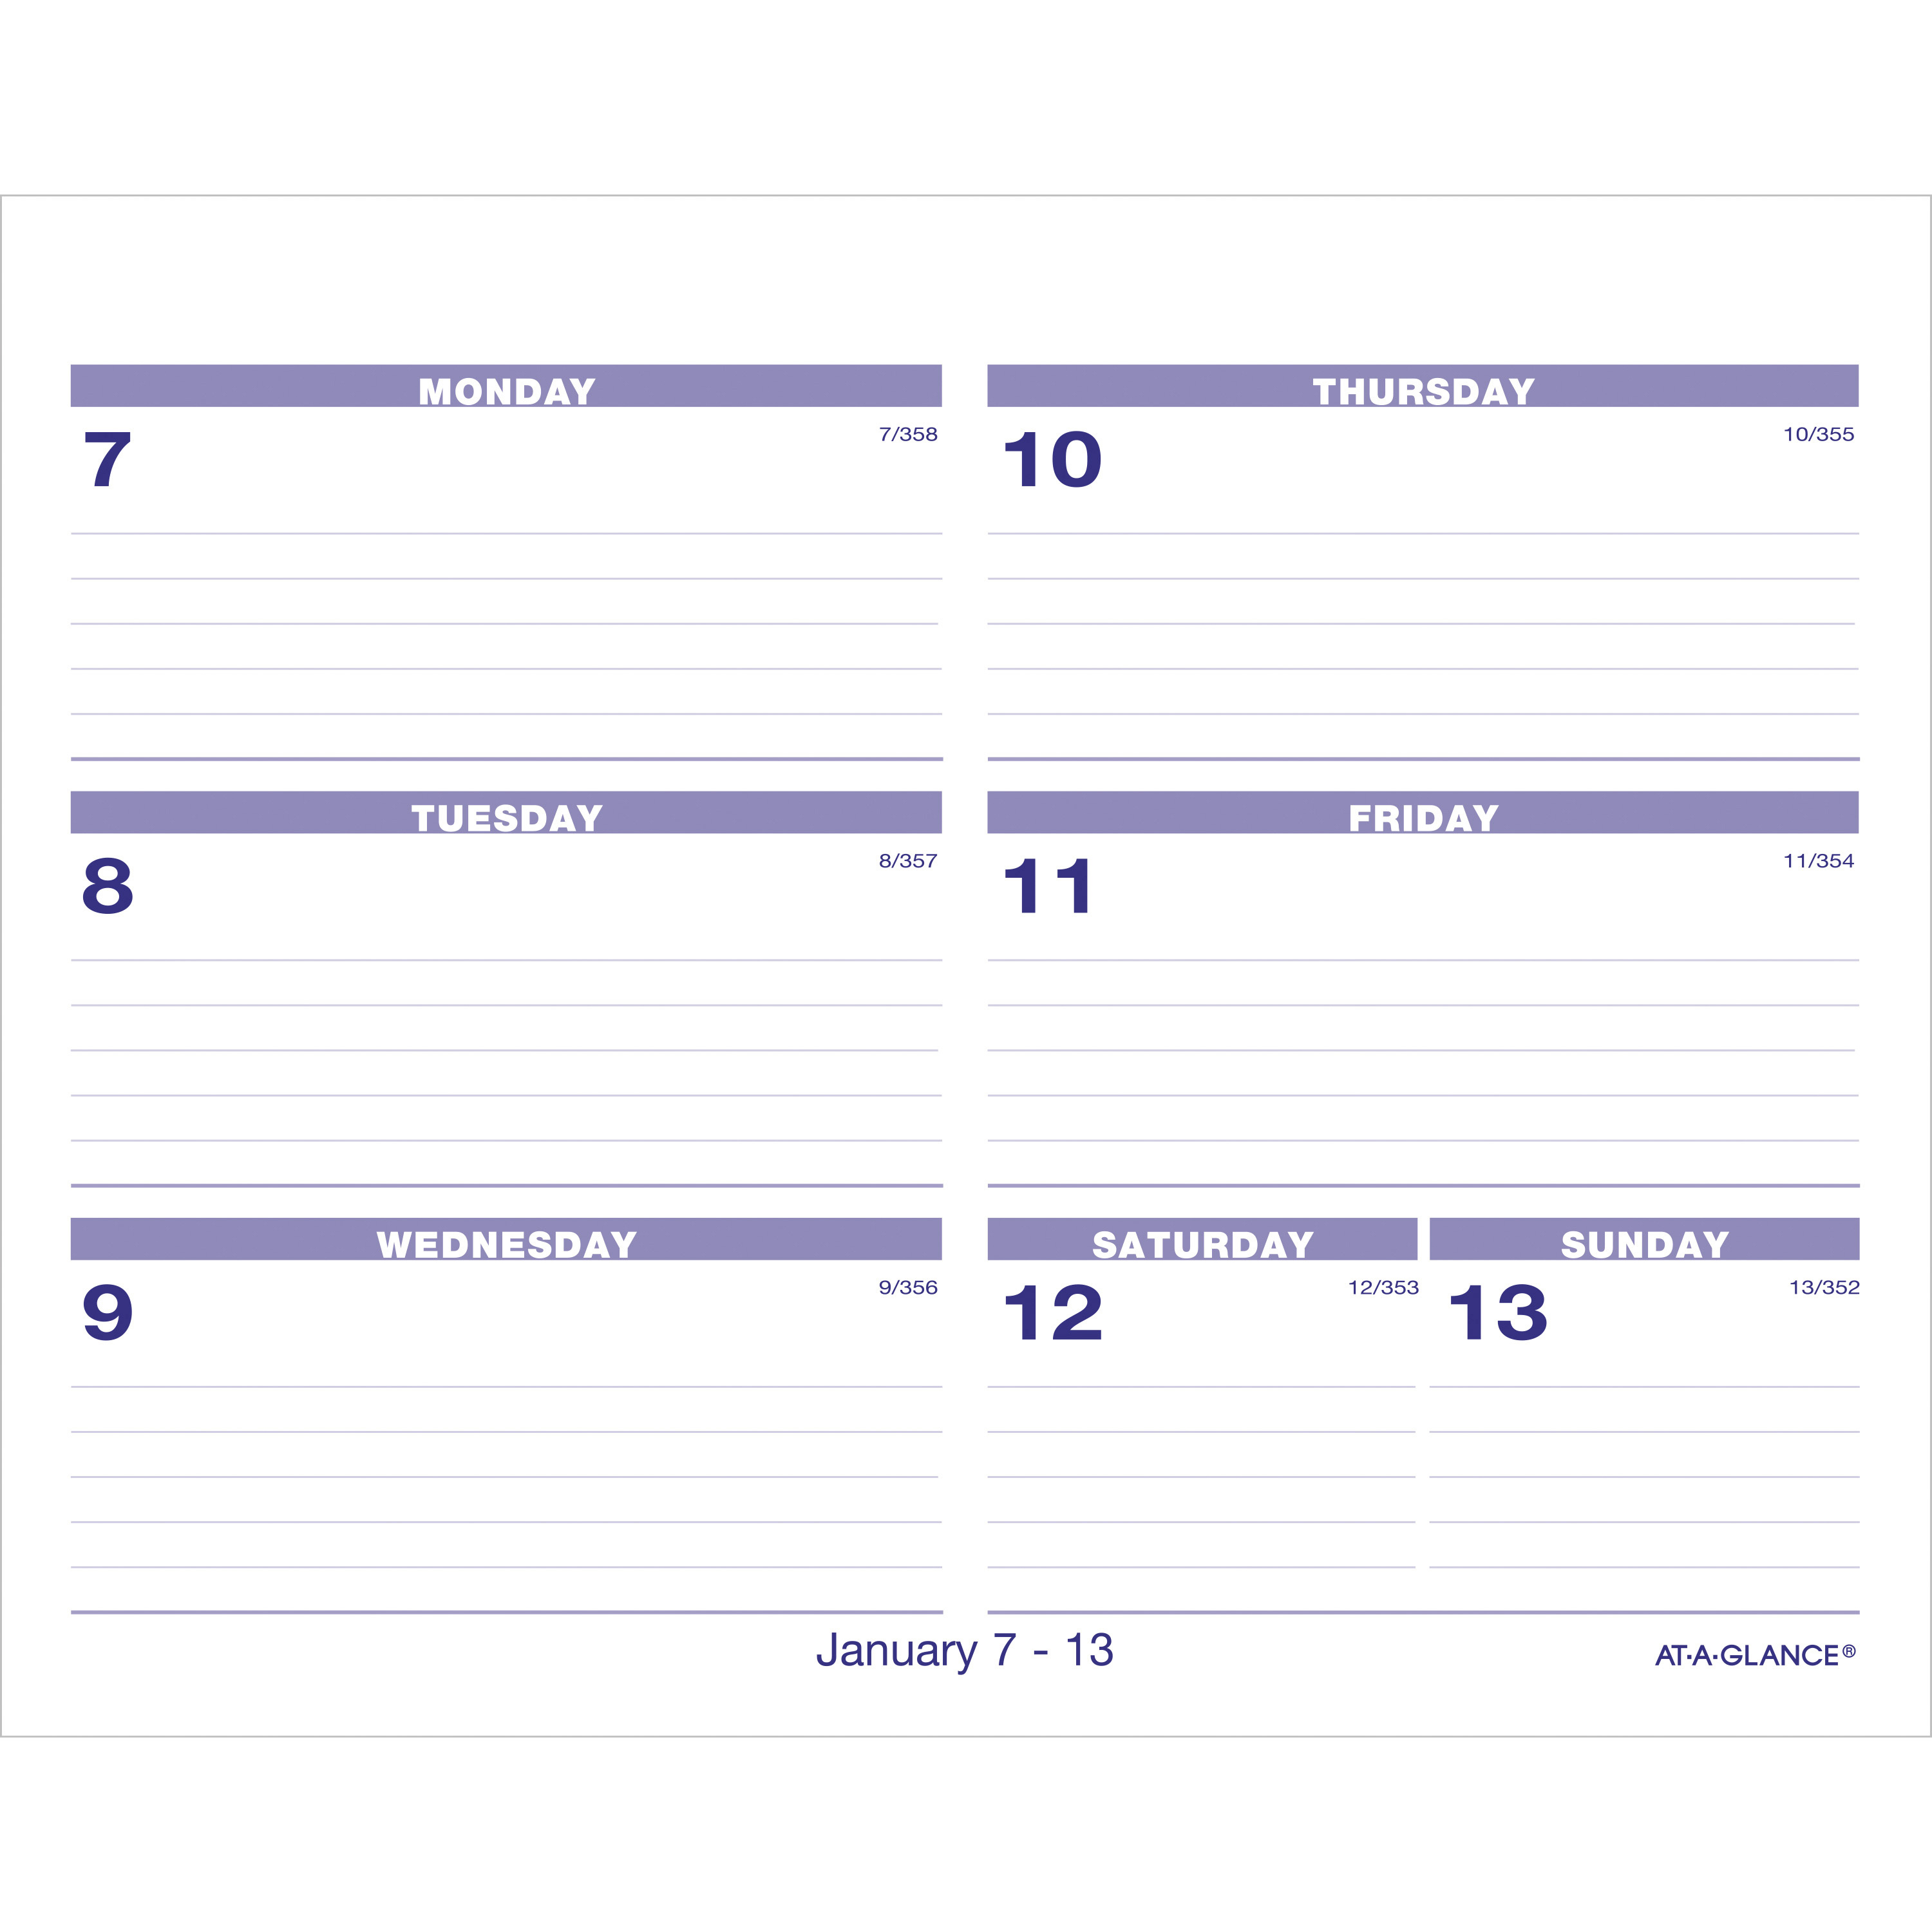 """At-A-Glance Flip-A-Week Desk Calendar Refill - Yes - Weekly - 1 Year -  January 2020 Till December 2020 - 1 Week Double Page Layout - 5 5/8"""" X 7"""" -"""